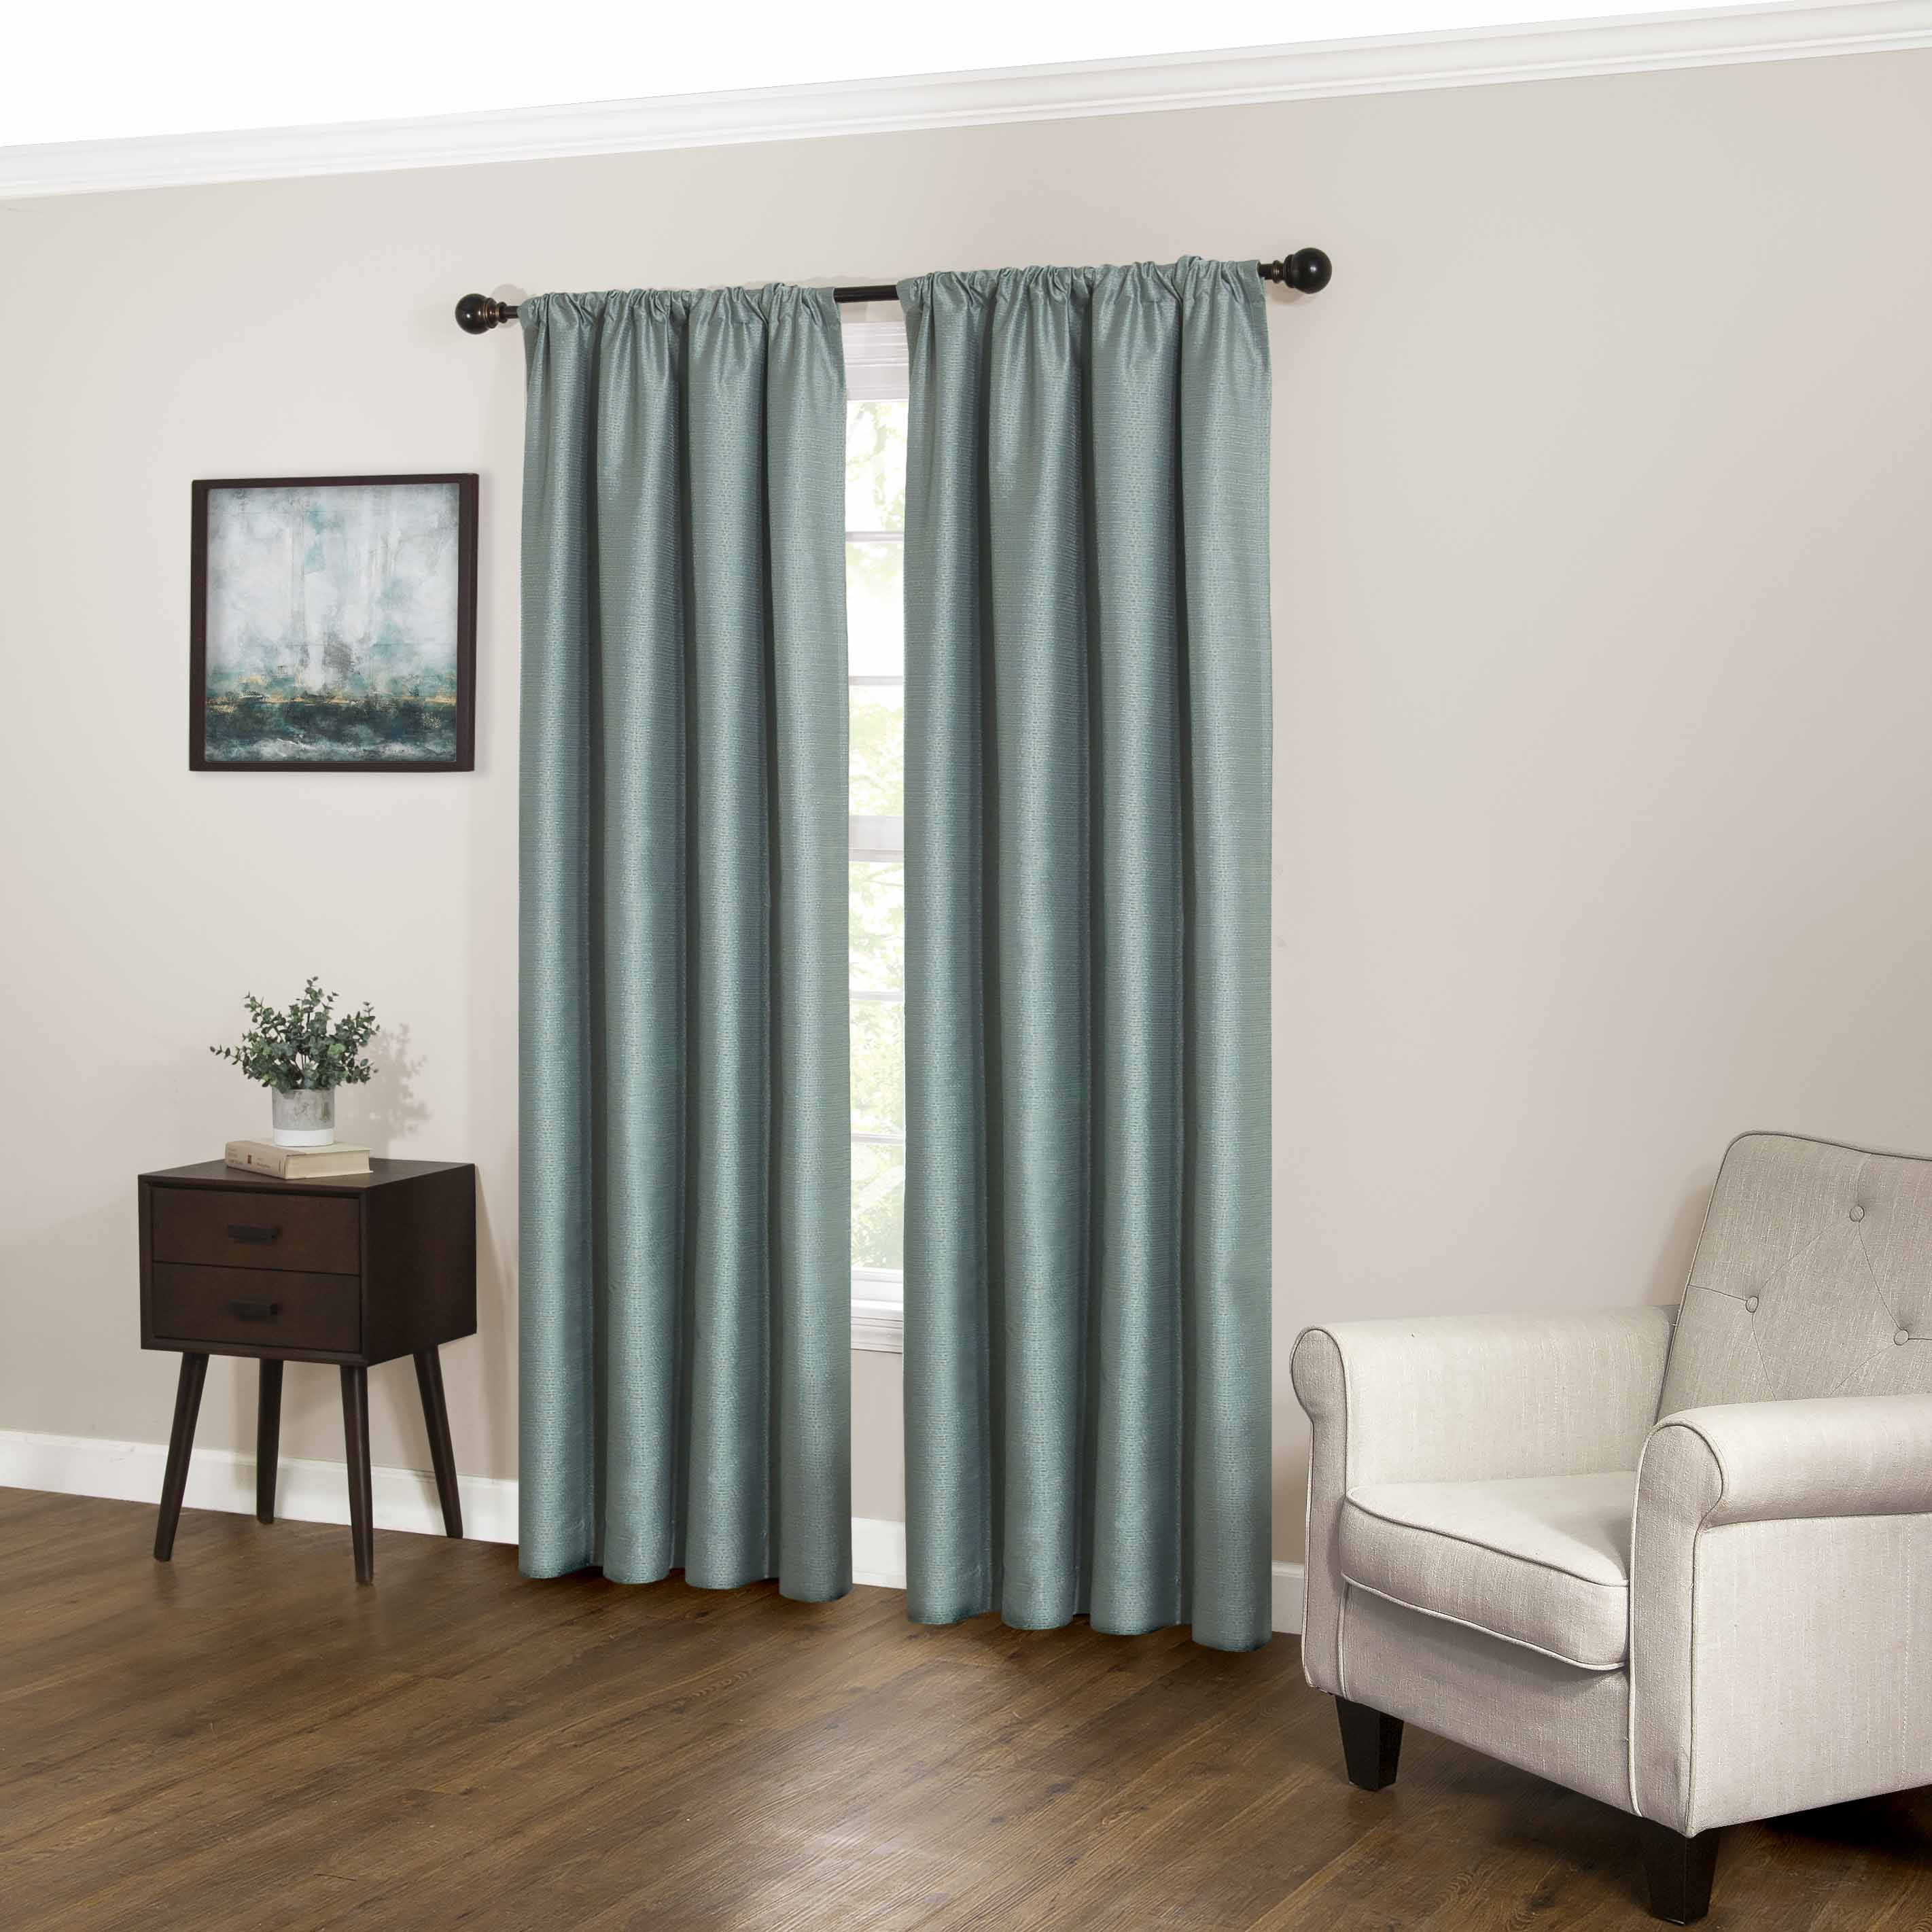 Teal Blackout Curtains Eclipse Ludlow Fashion Blackout Window Curtain